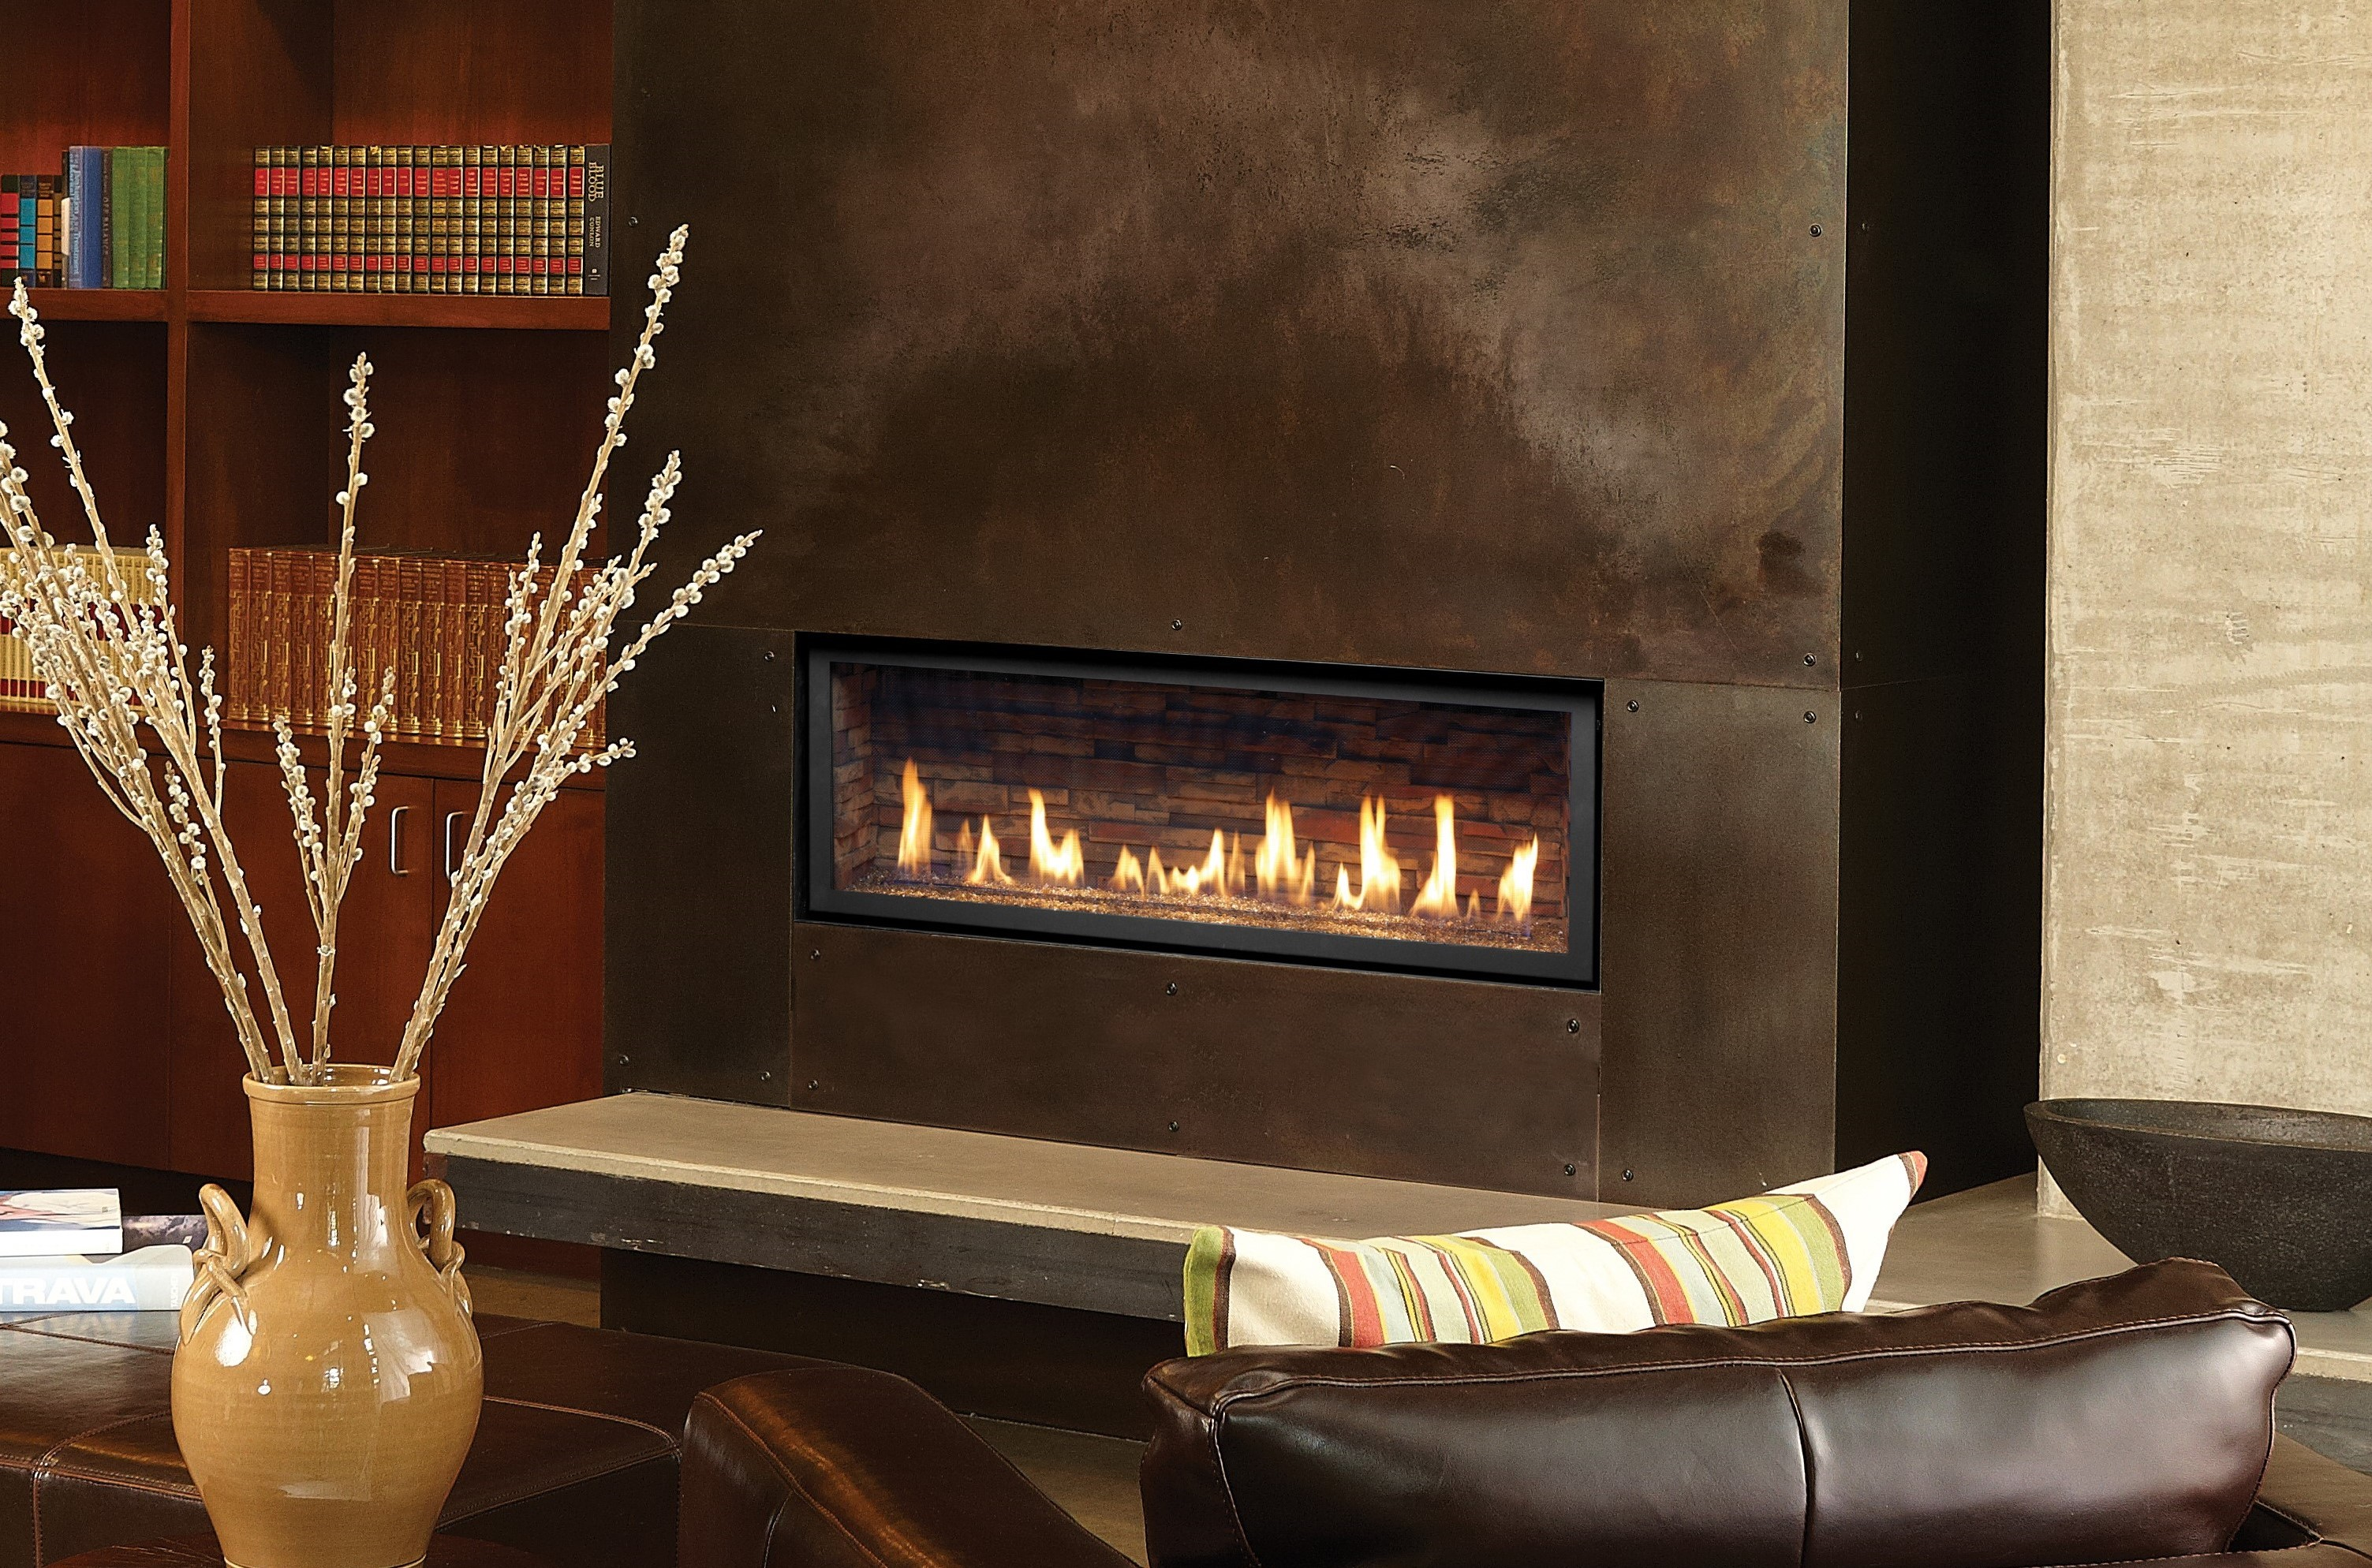 Another Image of the modern 4415 HO gas fireplace made by Fireplace Xtordinair featuring a modern linear design.